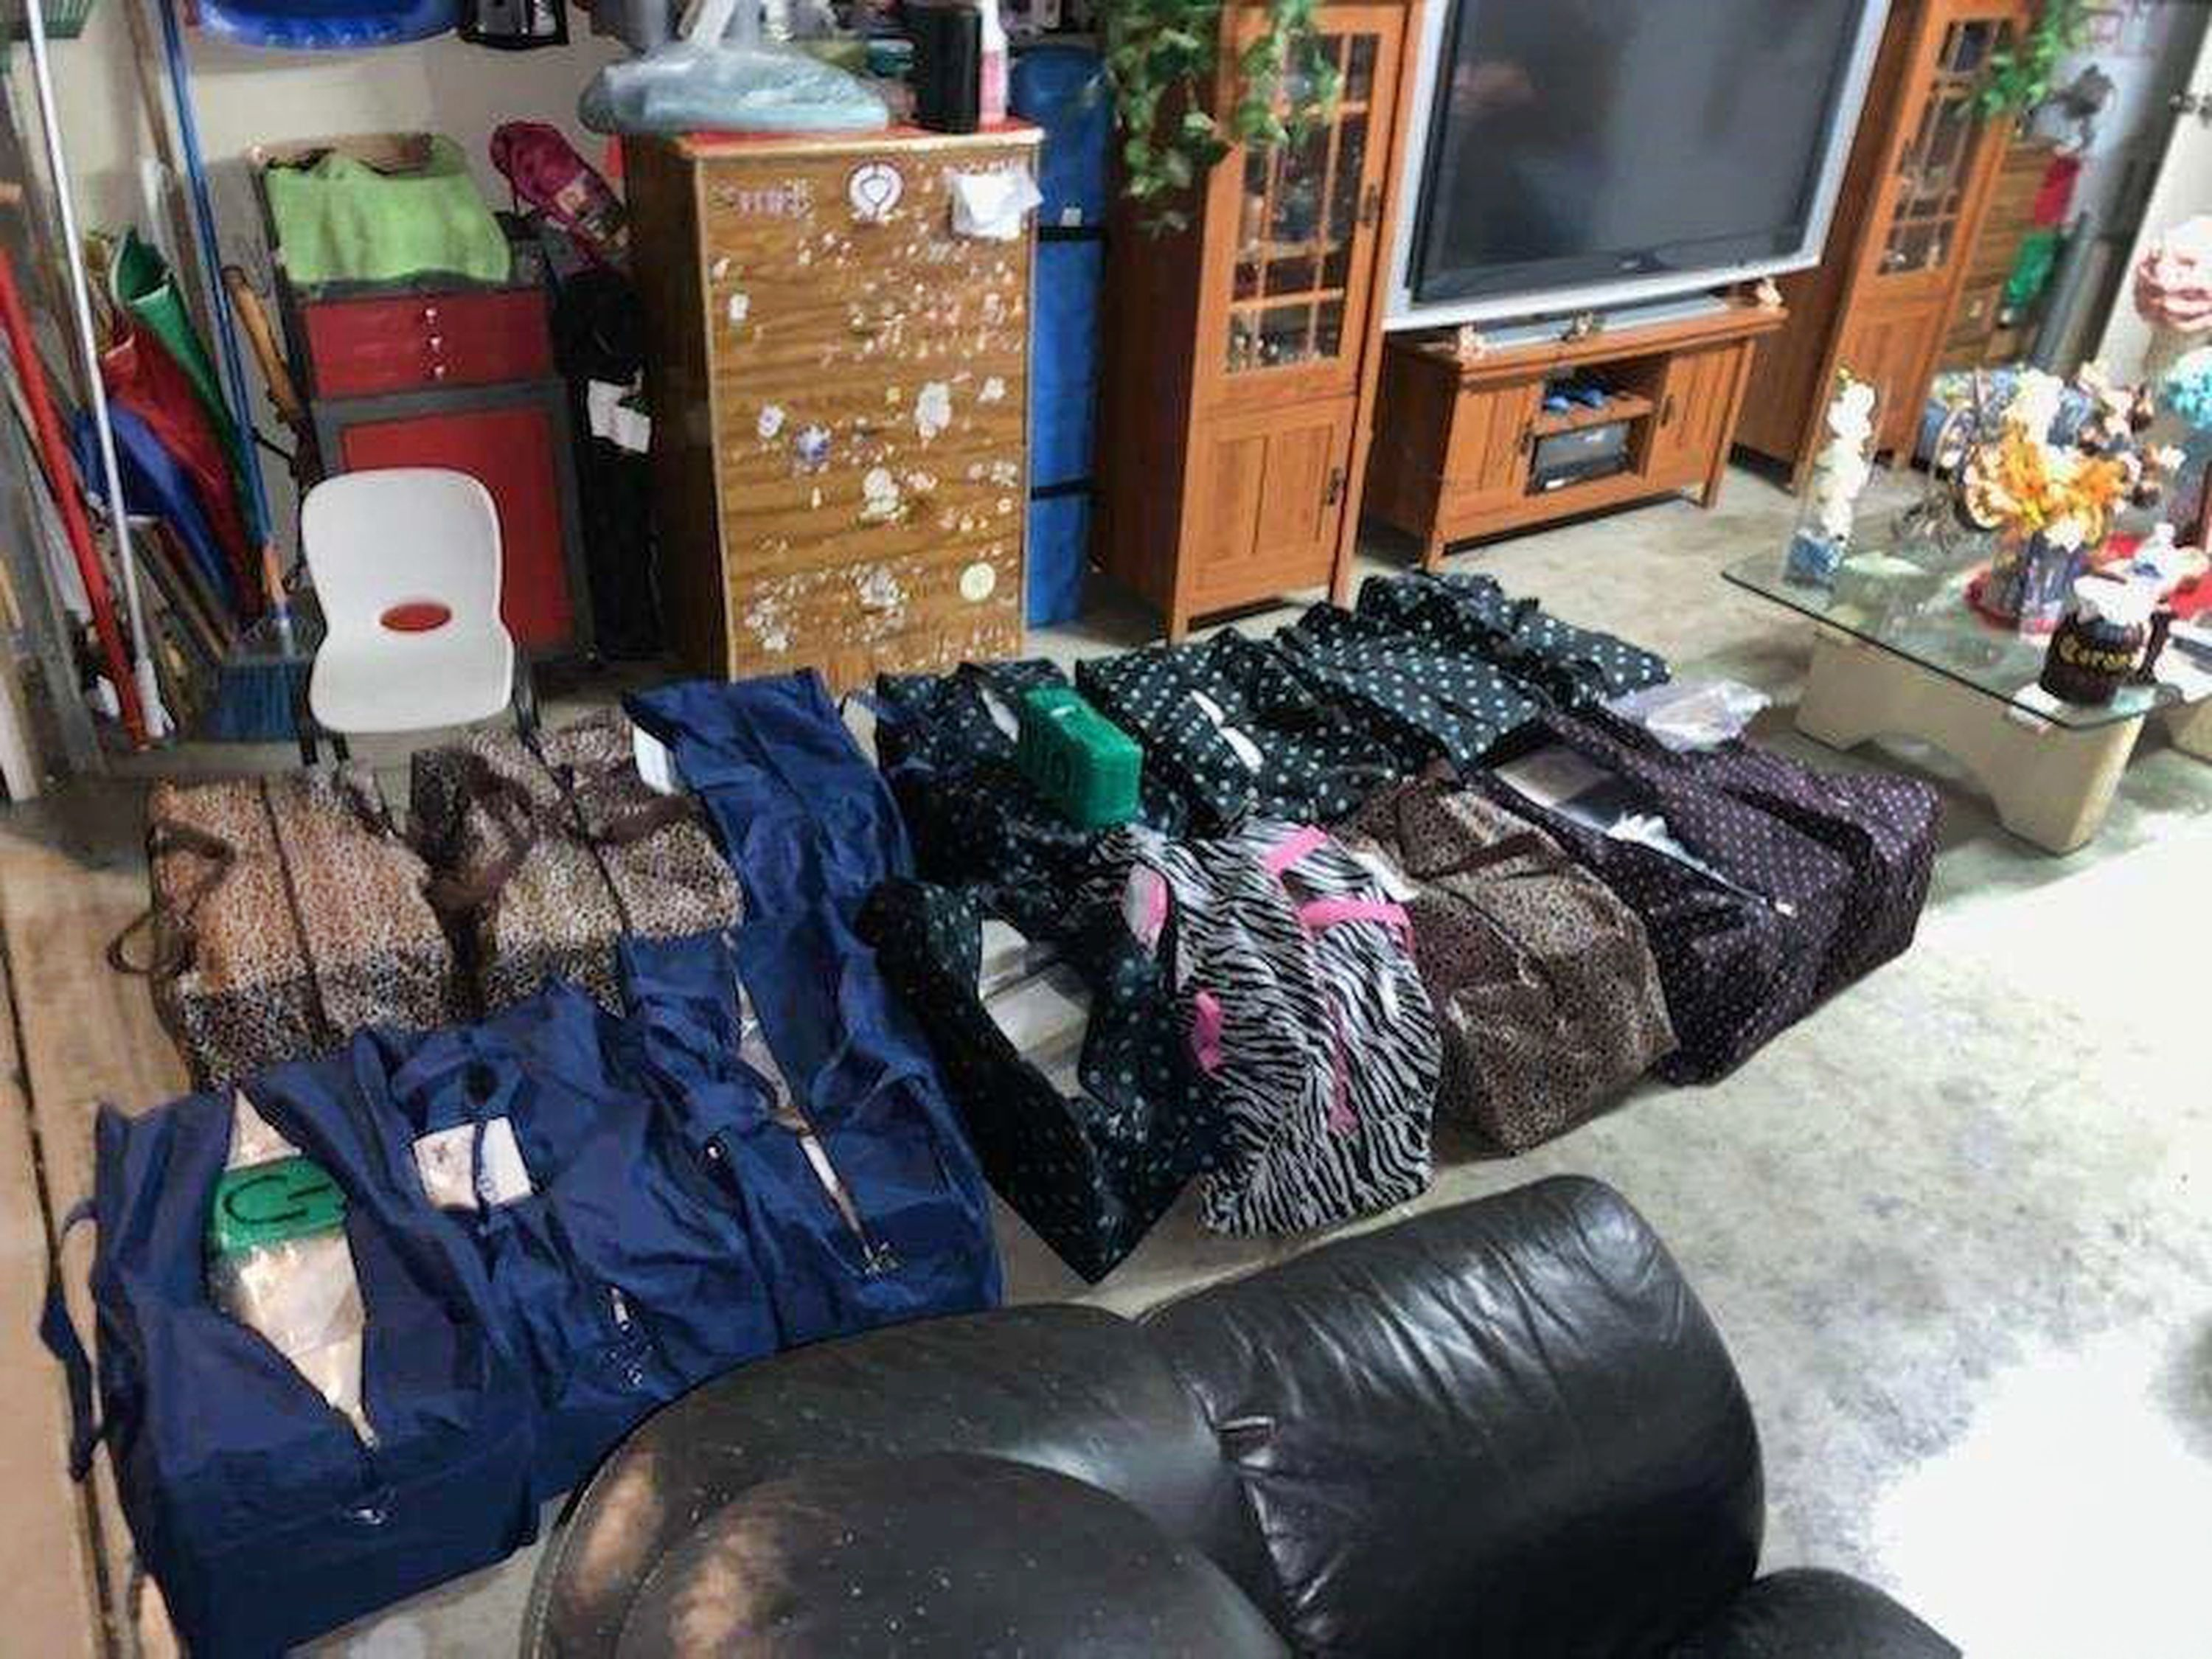 This undated image provided by the Drug Enforcement Administration shows narcotics stashed in a house in Perris, Calif. DEA agents authored state search warrants for multiple locations, including the courier target's residence and a narcotics stash house within the city of Perris, Calif. During a search of the courier's residence, agents located approximately 25 duffle bags within the garage of the residence containing approximately 406 kilograms of cocaine, six kilograms of heroin, and 650 pounds of crystal methamphetamine, and approximately 1,600 pounds of crystal methamphetamine. (Drug Enforcement Administration via AP)